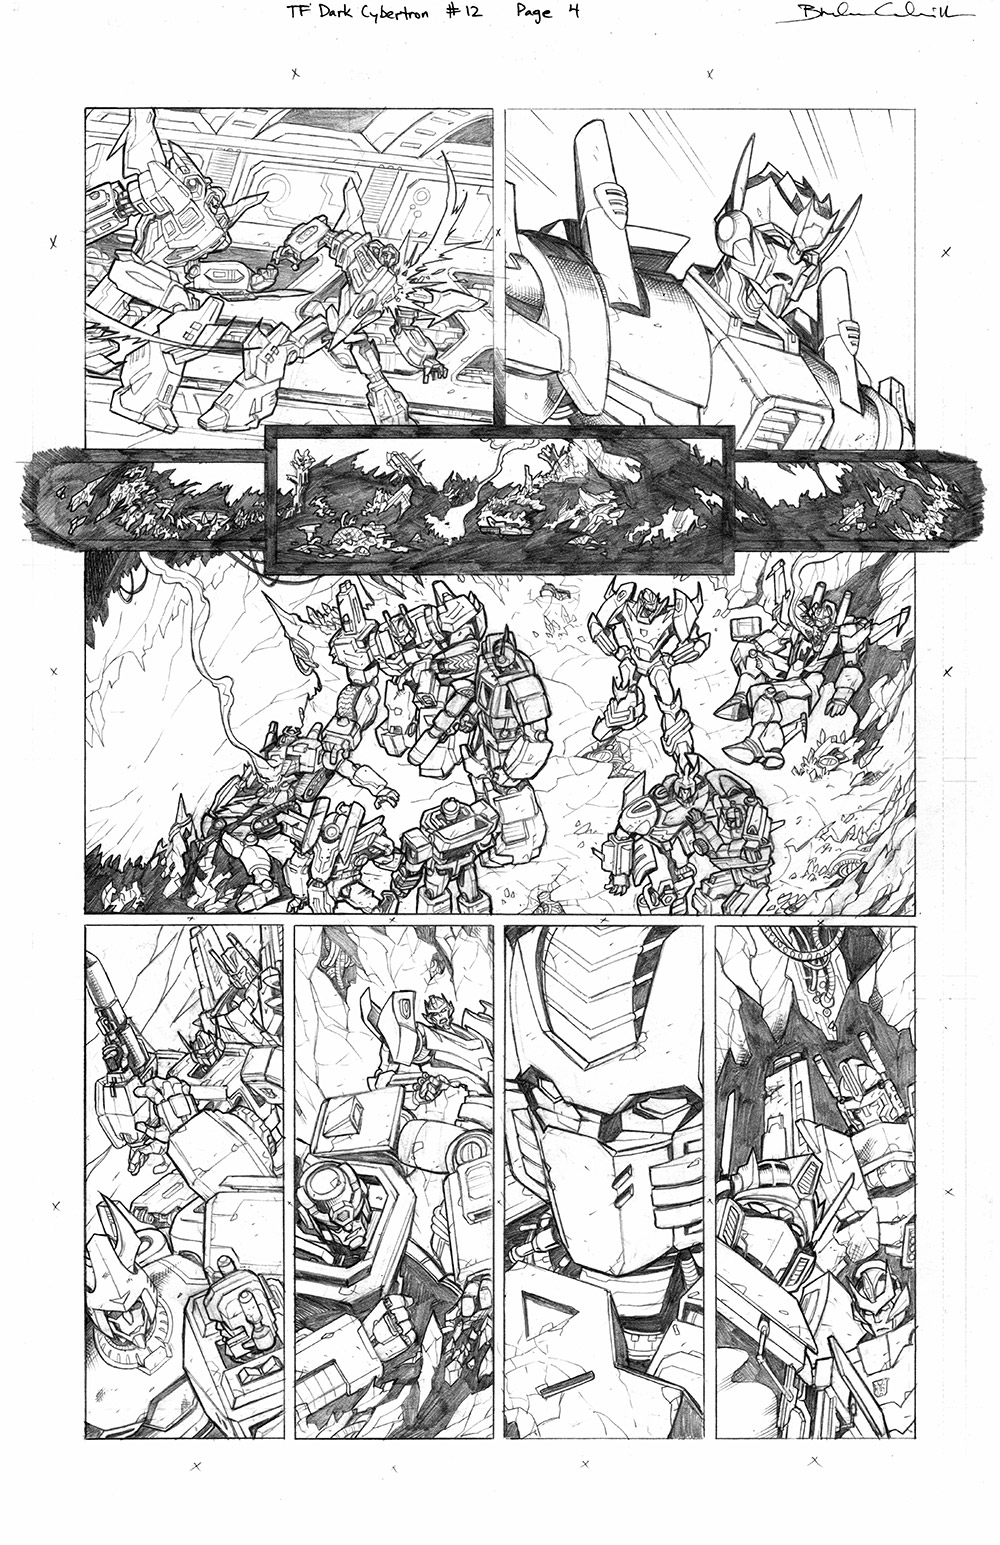 Transformers: Dark Cybertron #12, Page 4